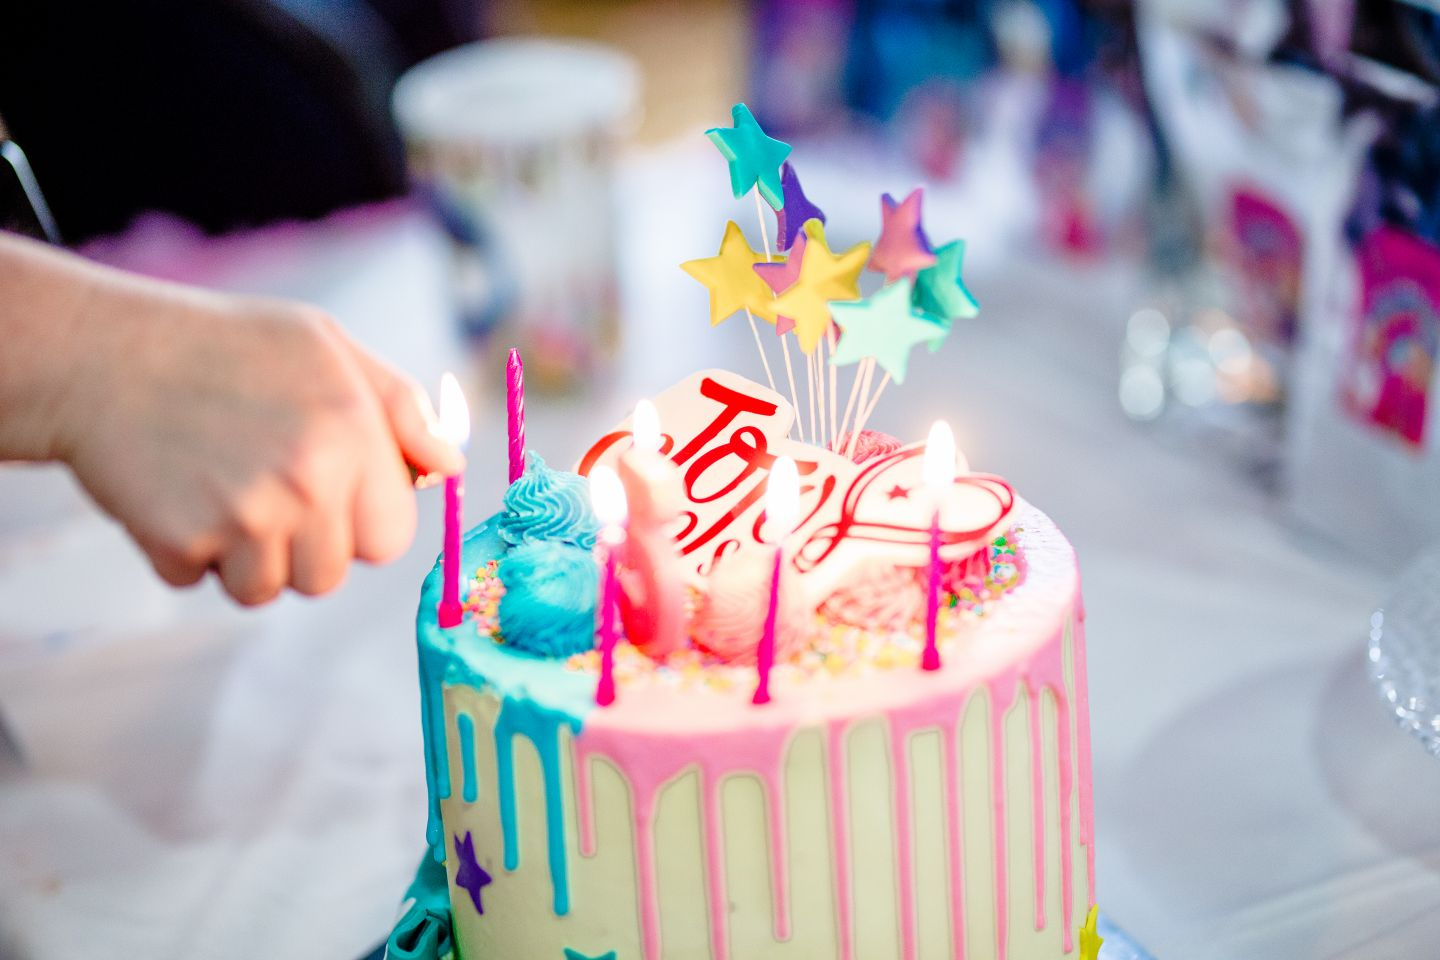 A JoJo Siwa birthday cake that is getting lit at a children's birthday party.